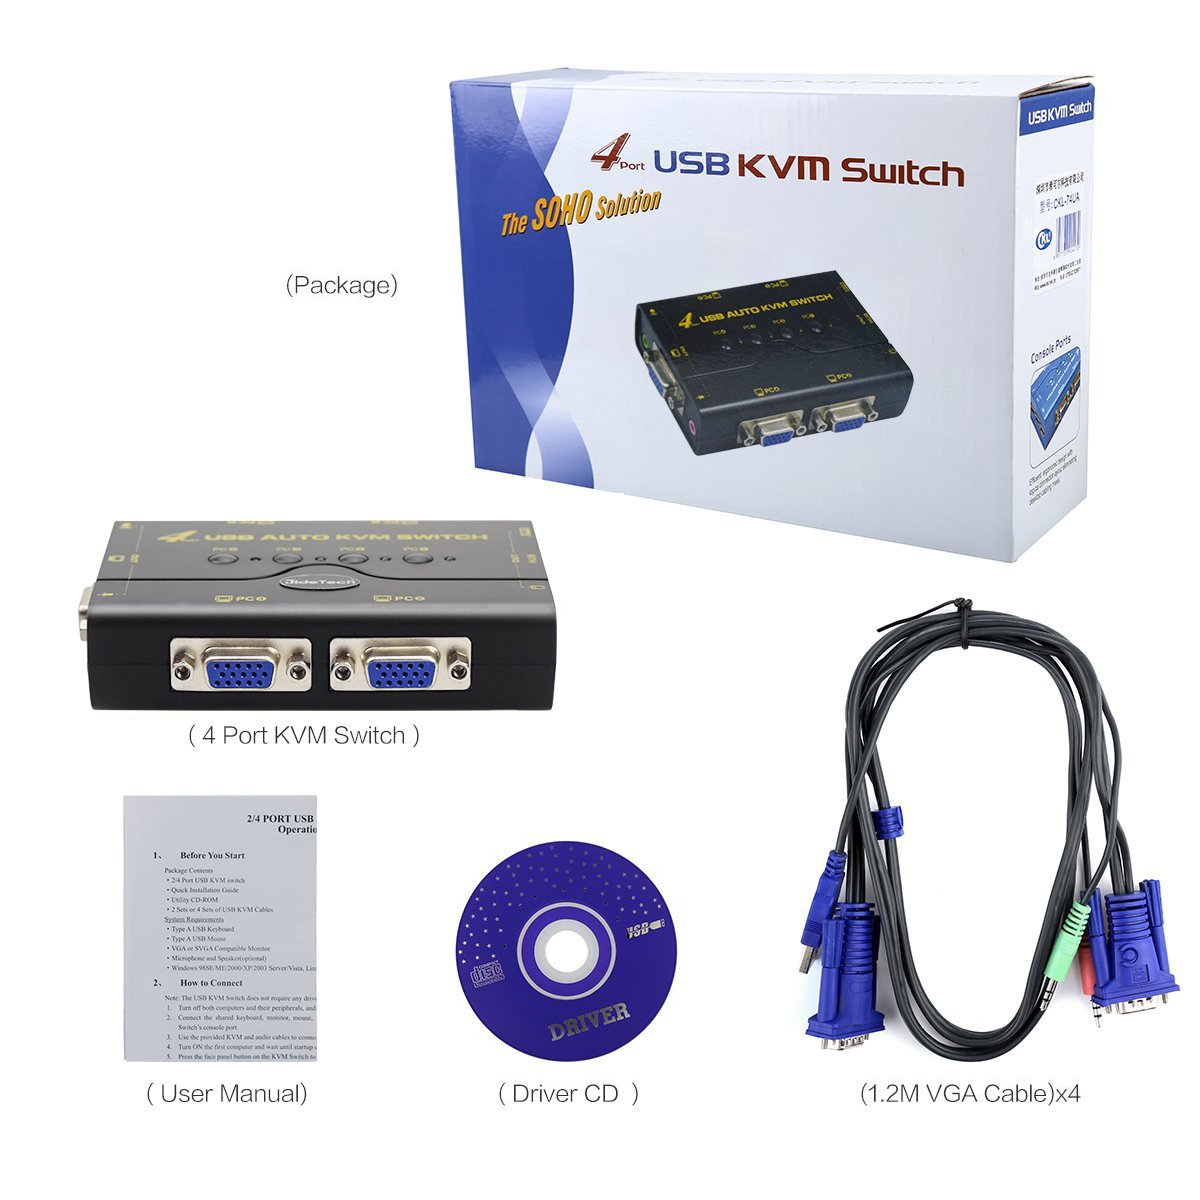 4 Port USB 2.0 VGA KVM Switch Up to 2048x1536 Resolution with USB Hub for PC/ Montior/Mouse/Keyboard Control by JideTech (Image #9)